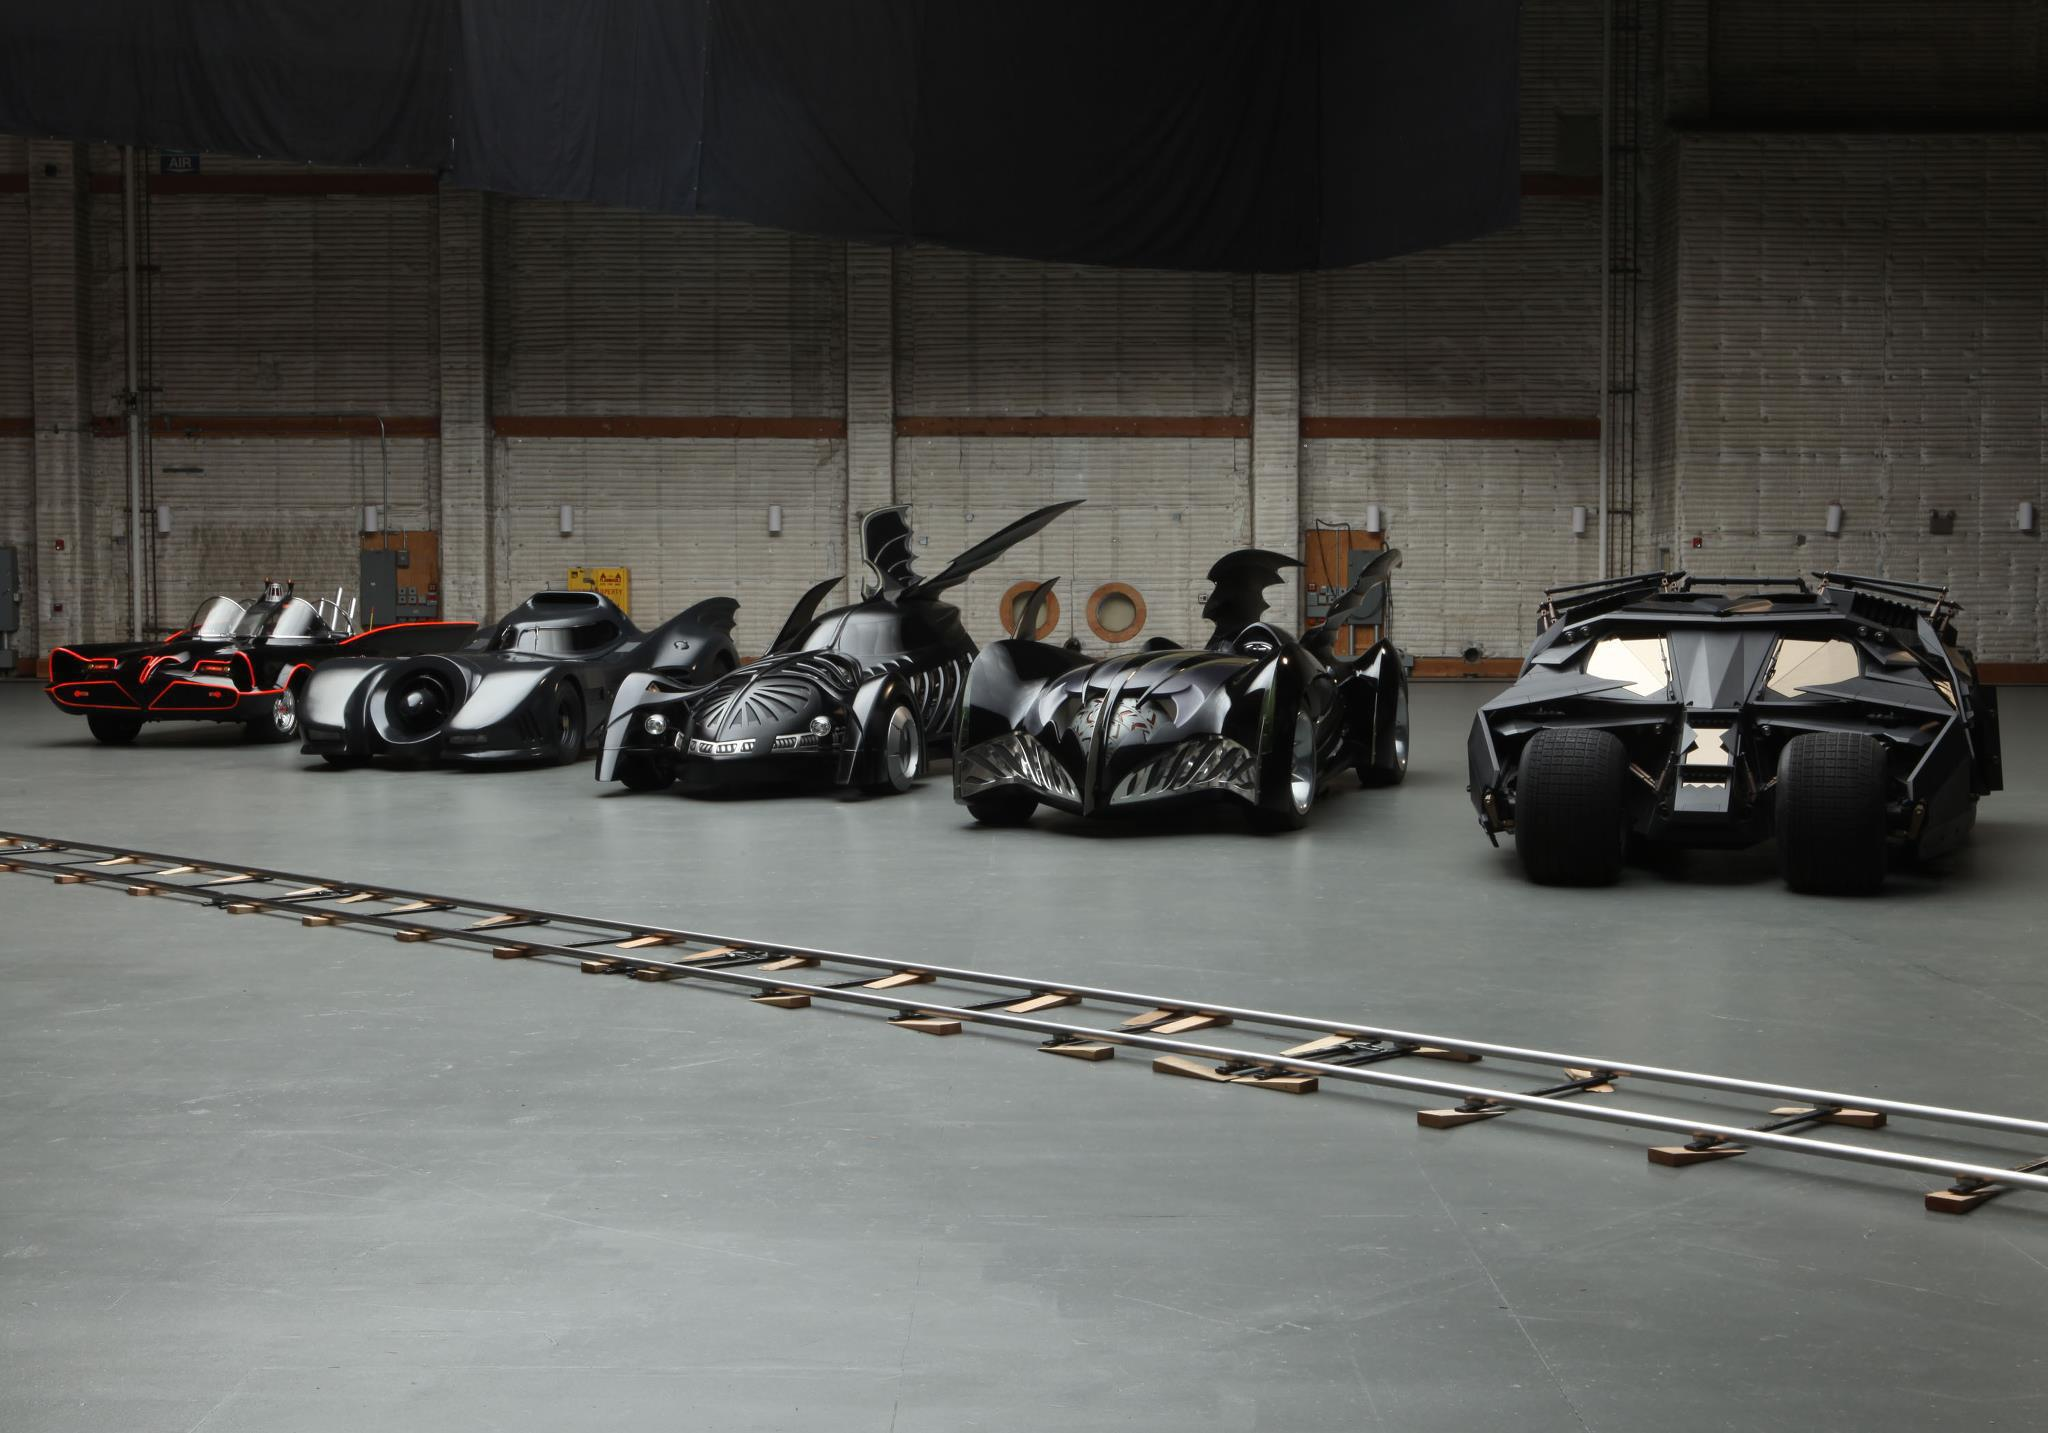 https://techcircledxb.files.wordpress.com/2013/10/1-batmobiles-heading-to-batman-dark-knight-rises-event.jpg